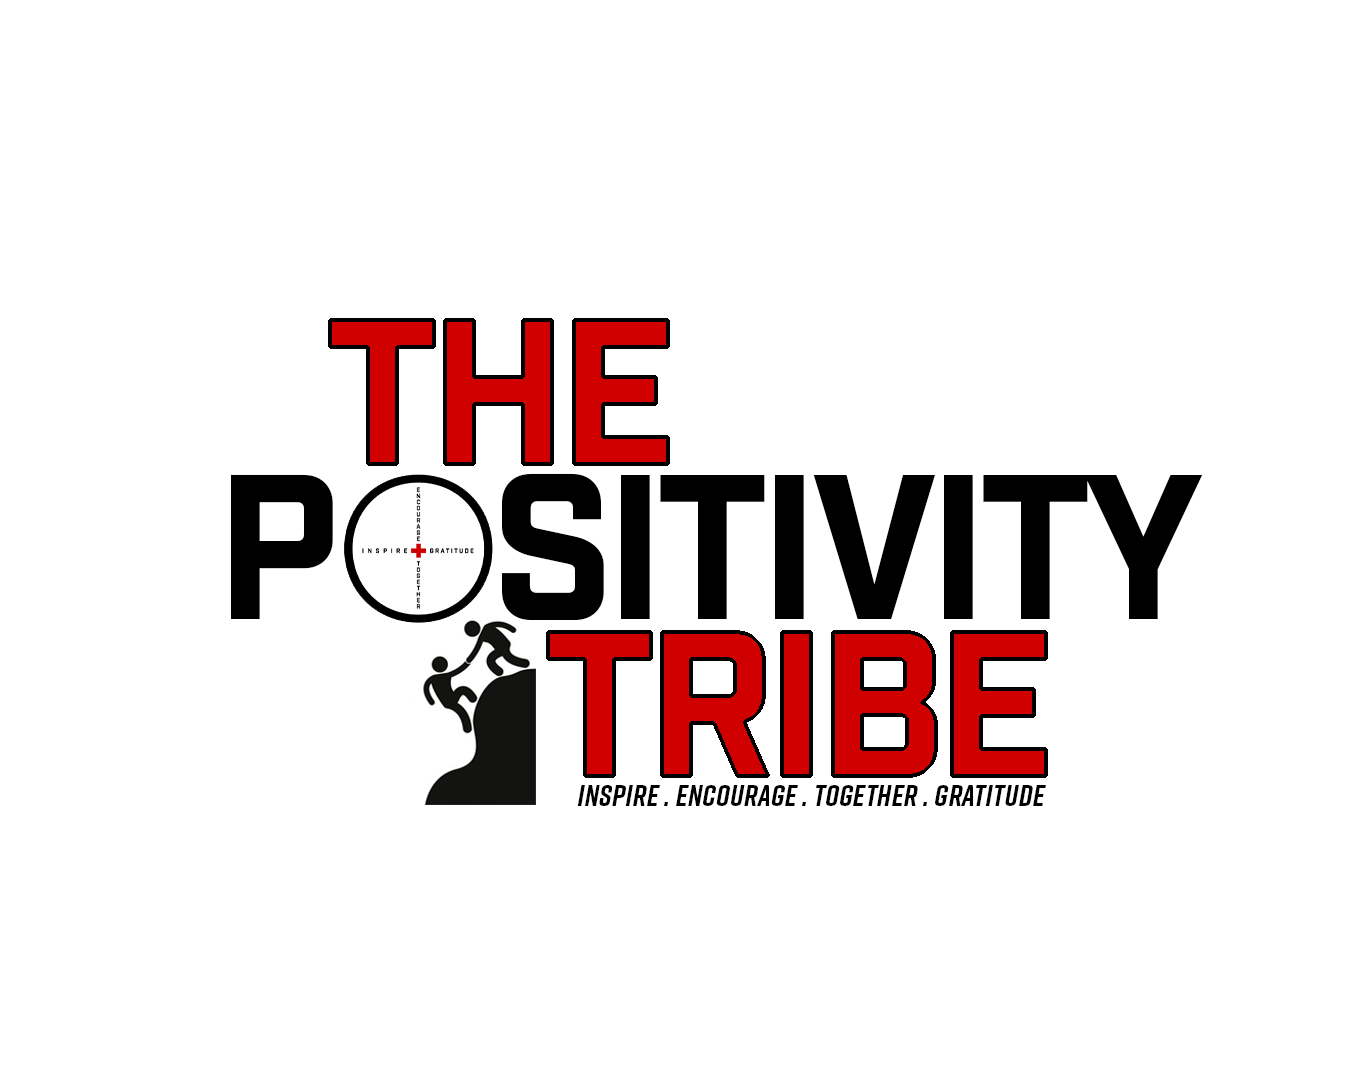 The Power of Positivity – One Person at a Time